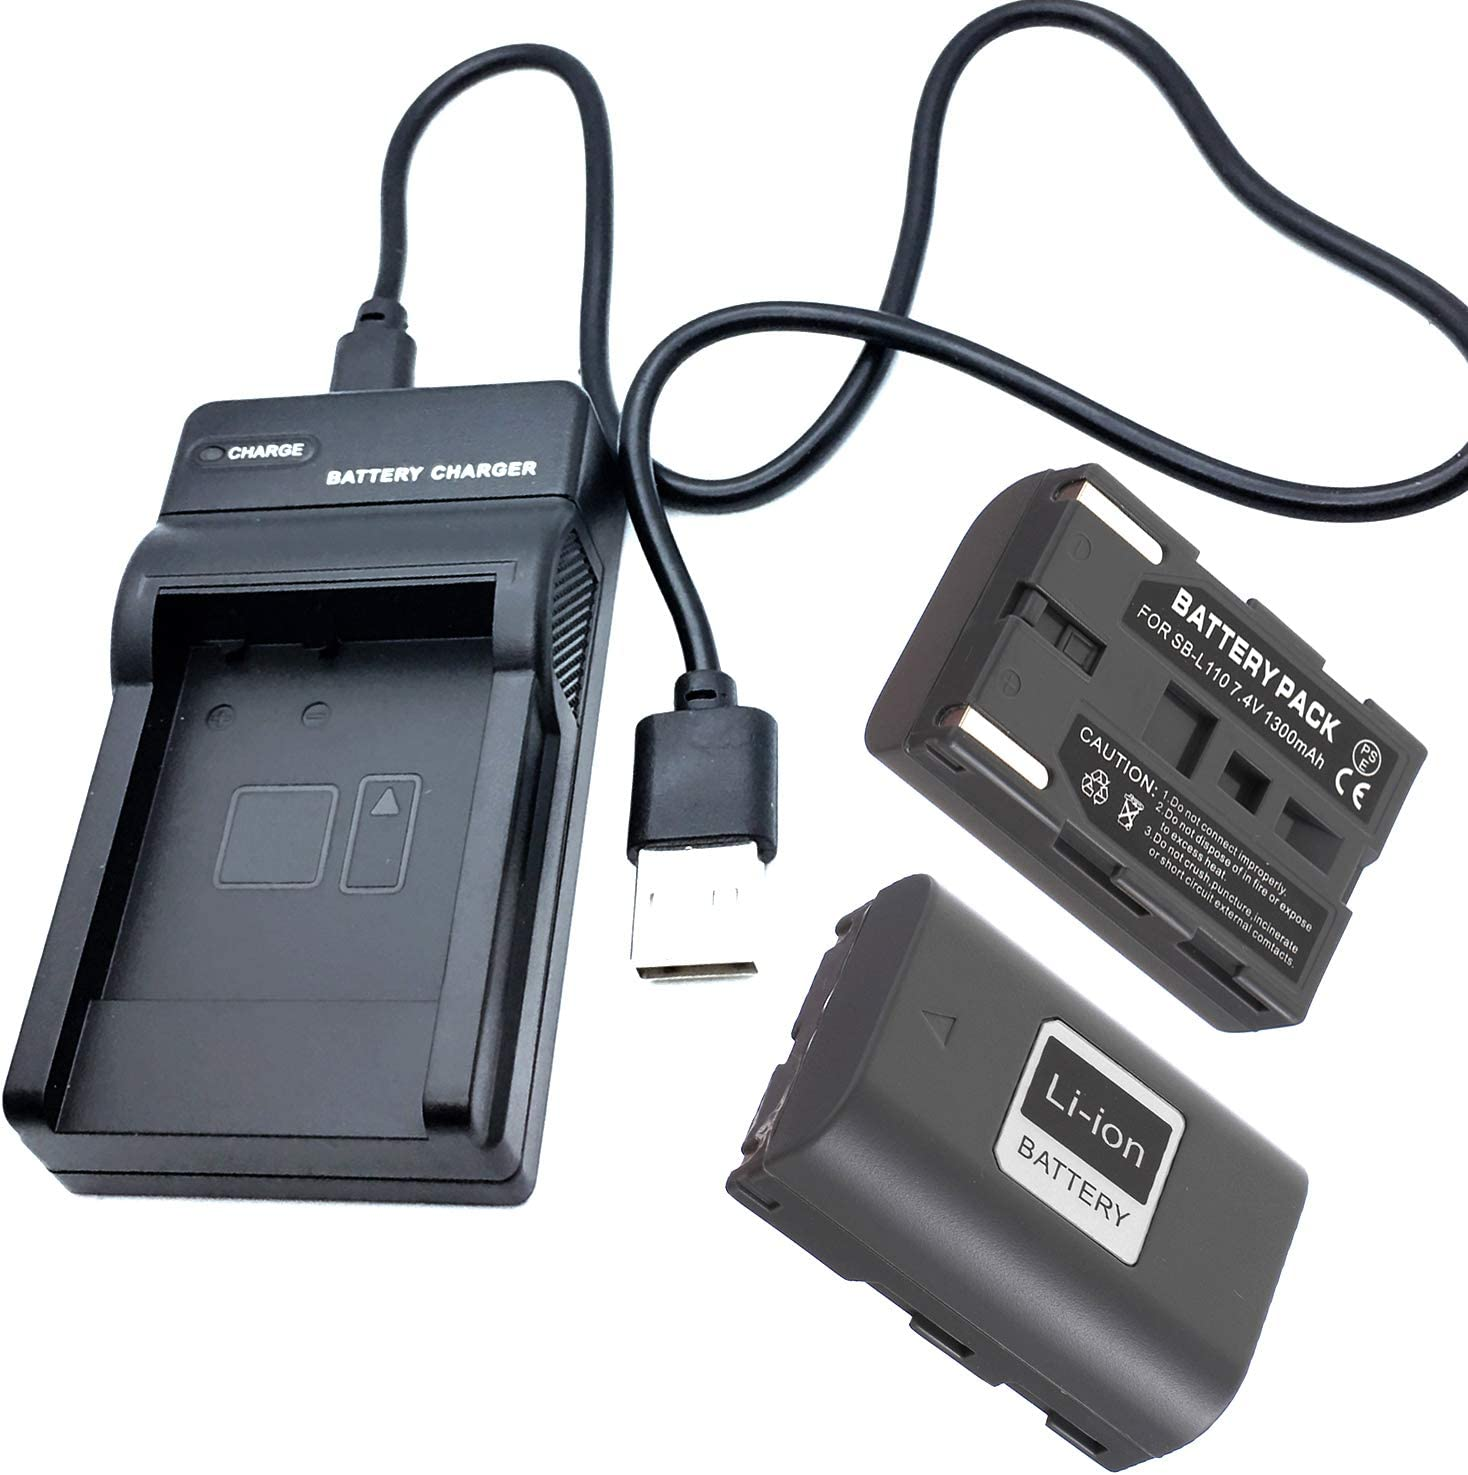 Battery Pack and LCD USB Travel Charger for Samsung SC-D23 SC-D24 SC-D27 SC-D29 Digital Video Camcorder